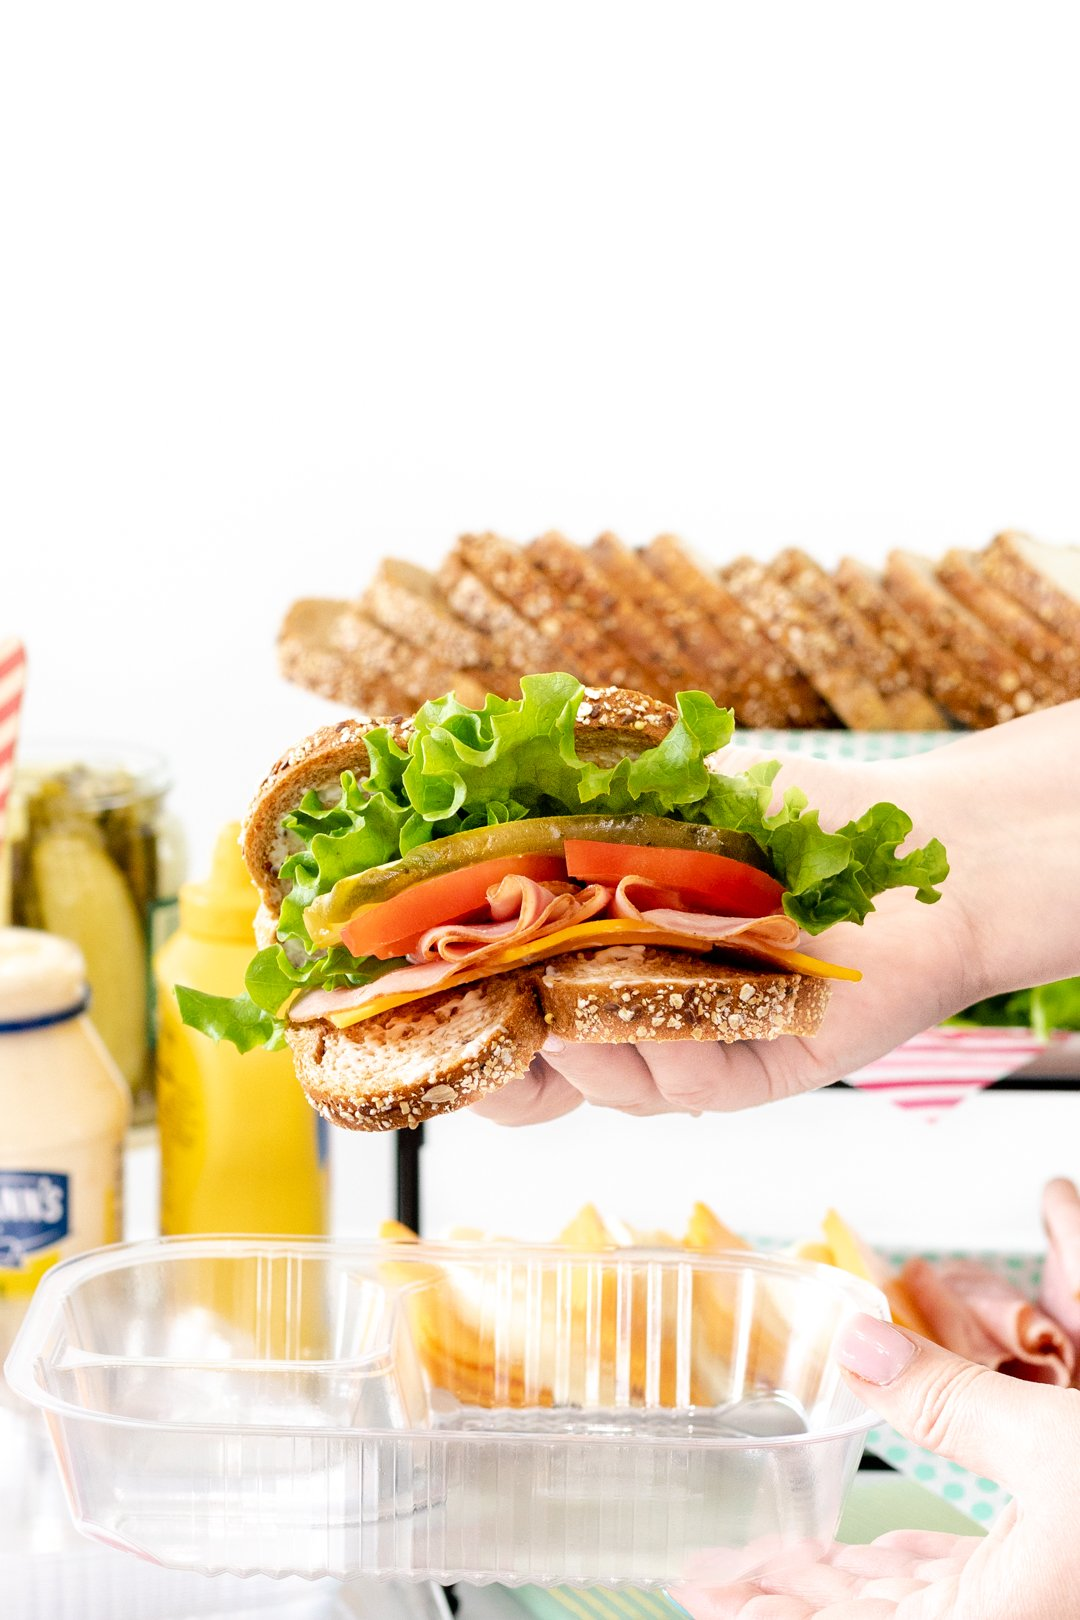 DIY Sandwich Bar sandwich with meat, cheese and vegetable fillings.